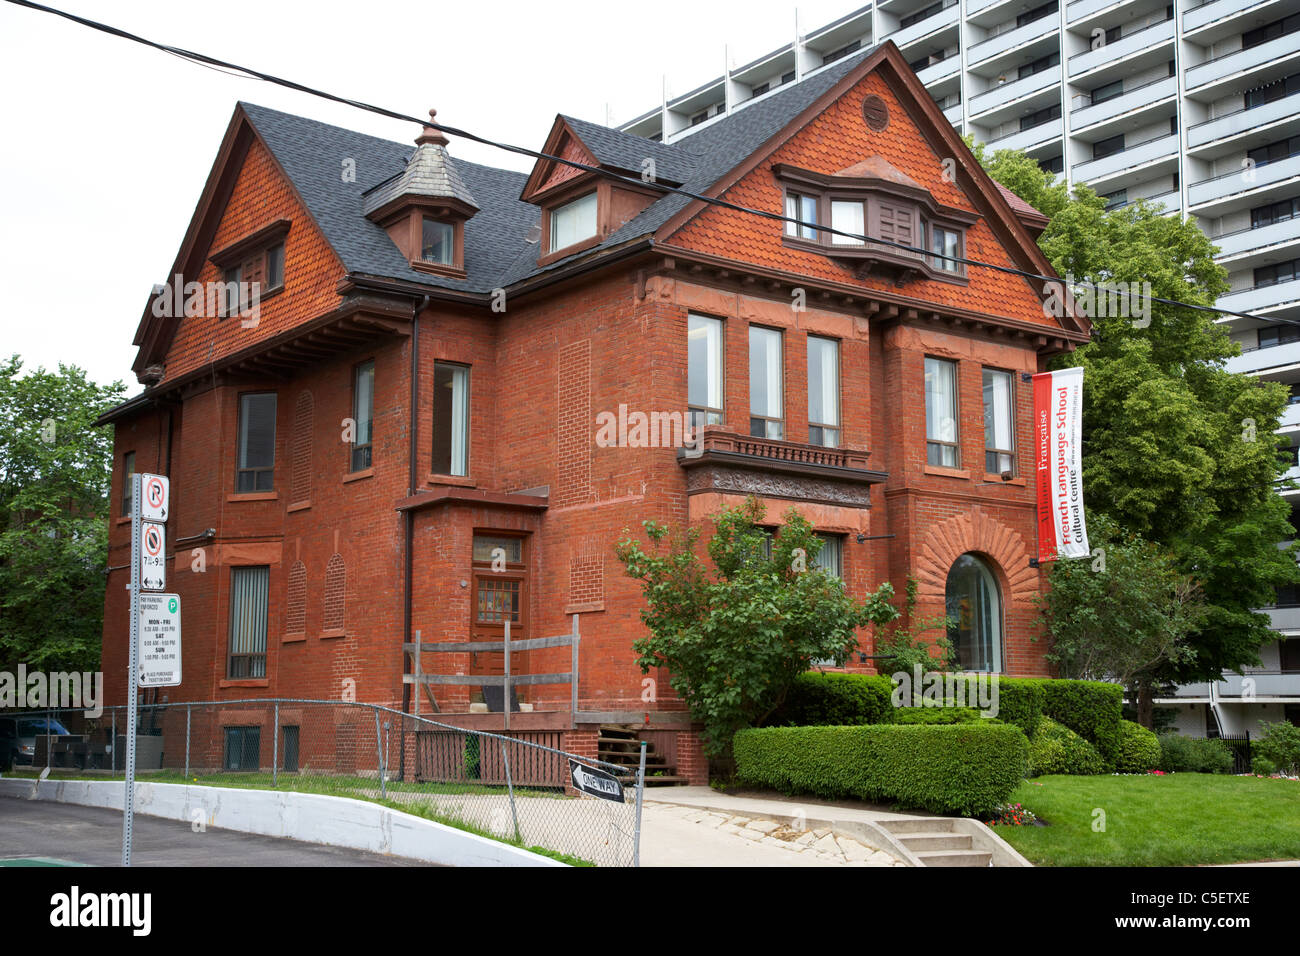 alliance francaise french language school and cultural centre toronto ontario canada - Stock Image